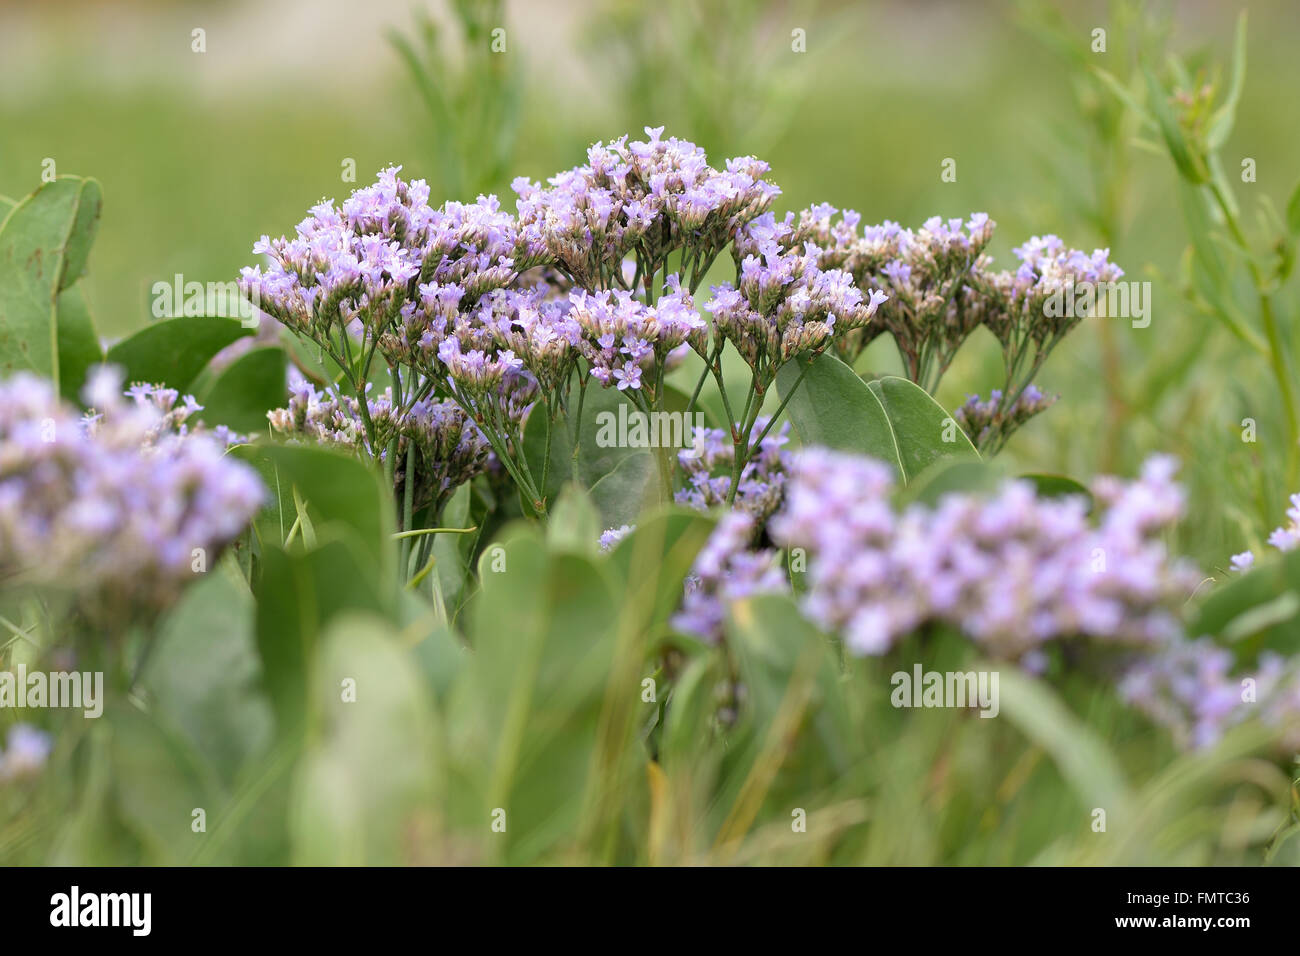 Common sea-lavender (Limonium vulgare). Flowers of plant in family Pumbaginaceae, flowering on inter-tidal mudflats - Stock Image